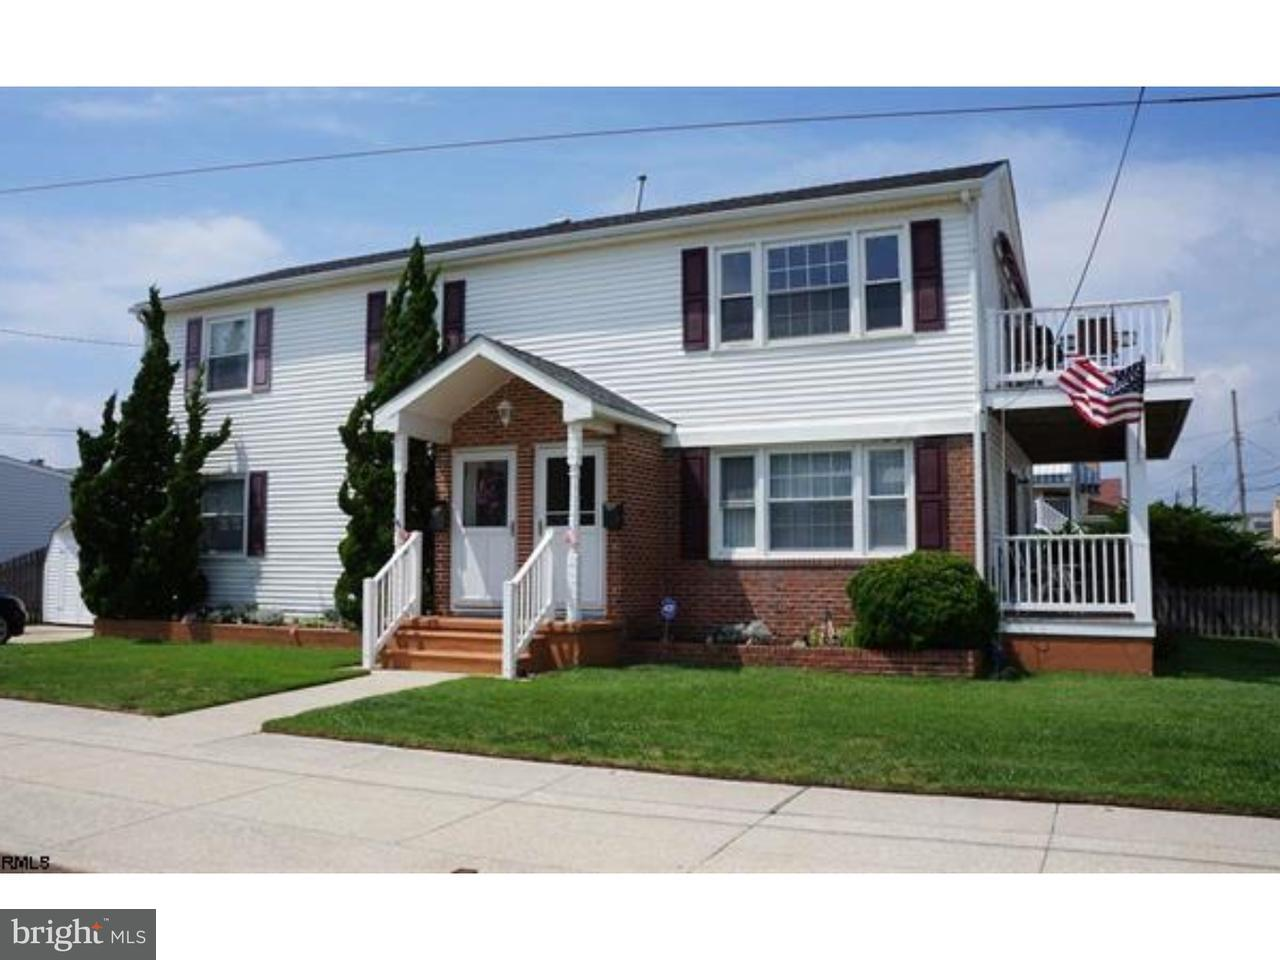 Duplex for Sale at 5401 EDGEWATER AVE #5403 Ventnor City, New Jersey 08406 United States